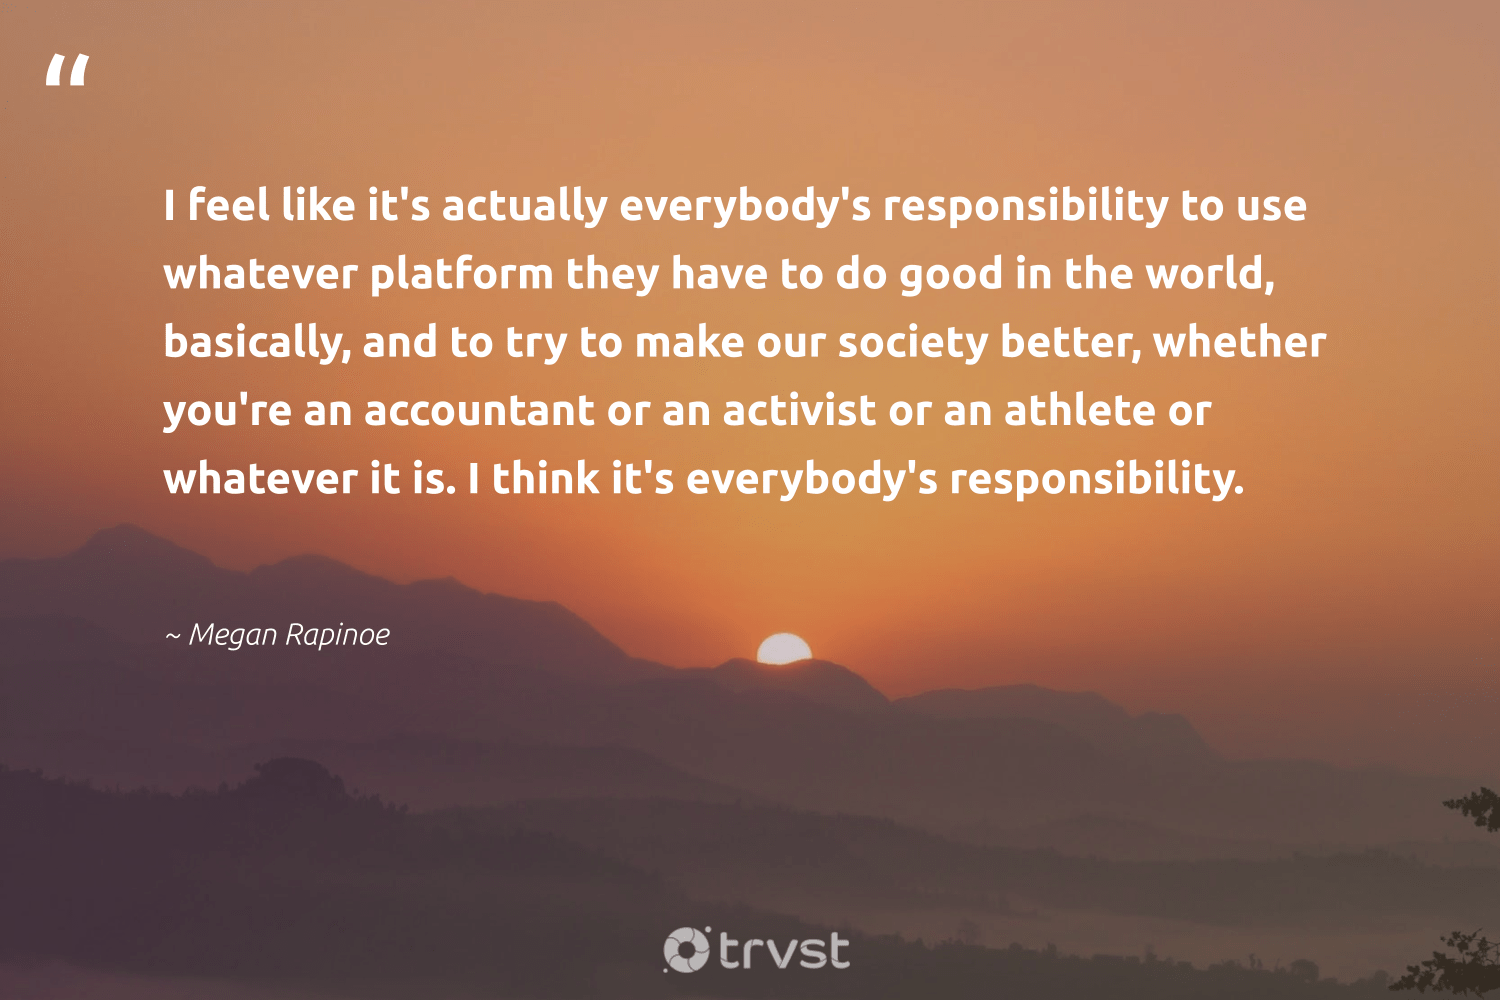 """""""I feel like it's actually everybody's responsibility to use whatever platform they have to do good in the world, basically, and to try to make our society better, whether you're an accountant or an activist or an athlete or whatever it is. I think it's everybody's responsibility.""""  - Megan Rapinoe #trvst #quotes #dogood #society #activist #socialgood #weareallone #changemakers #dotherightthing #giveback #betterplanet #giveforthefuture"""